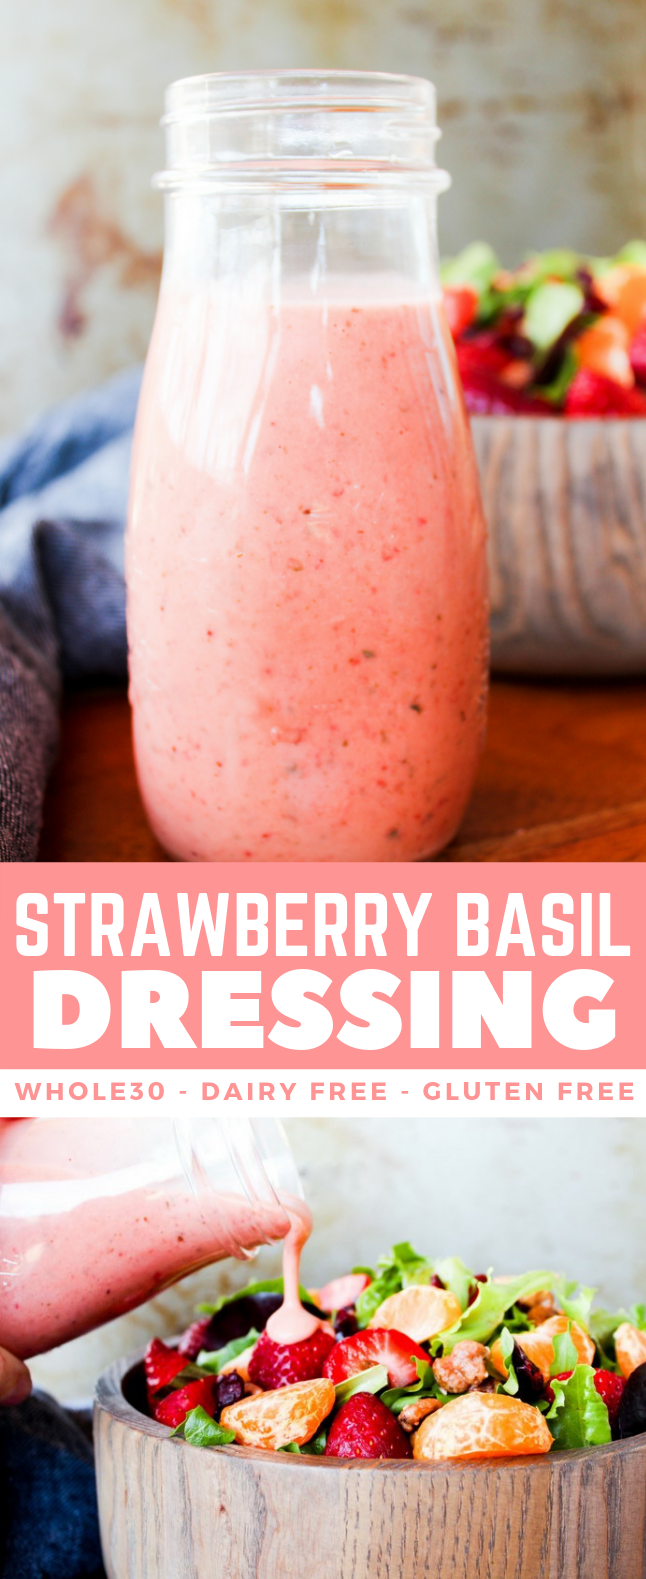 STRAWBERRY BASIL DRESSING #paleo #whole30